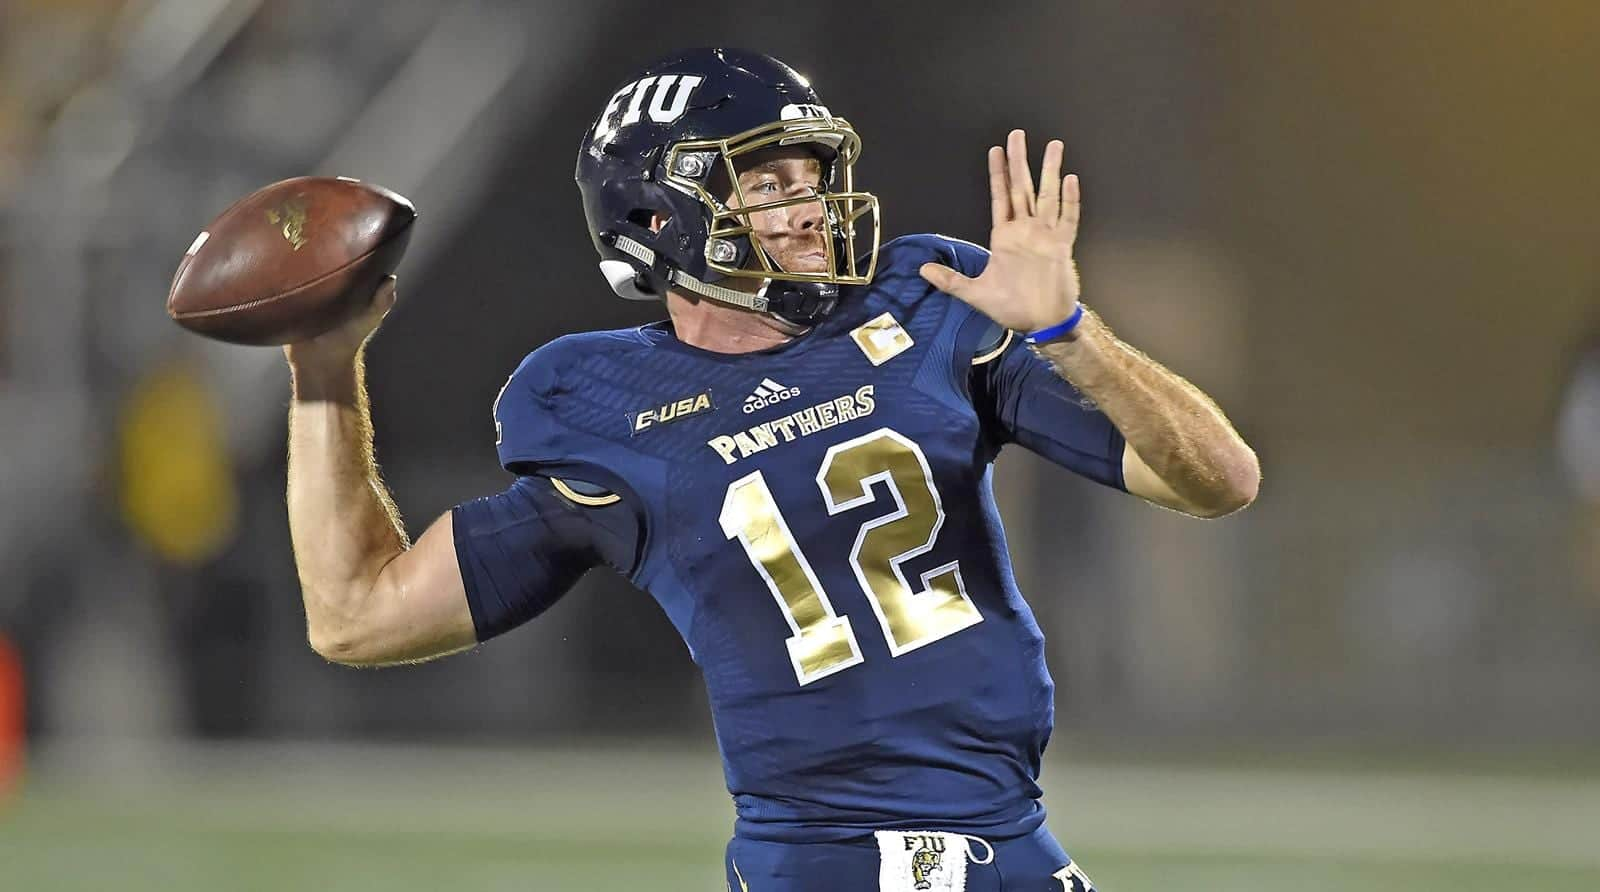 Who are the best quarterback prospects to target on the third day of the 2020 NFL Draft?